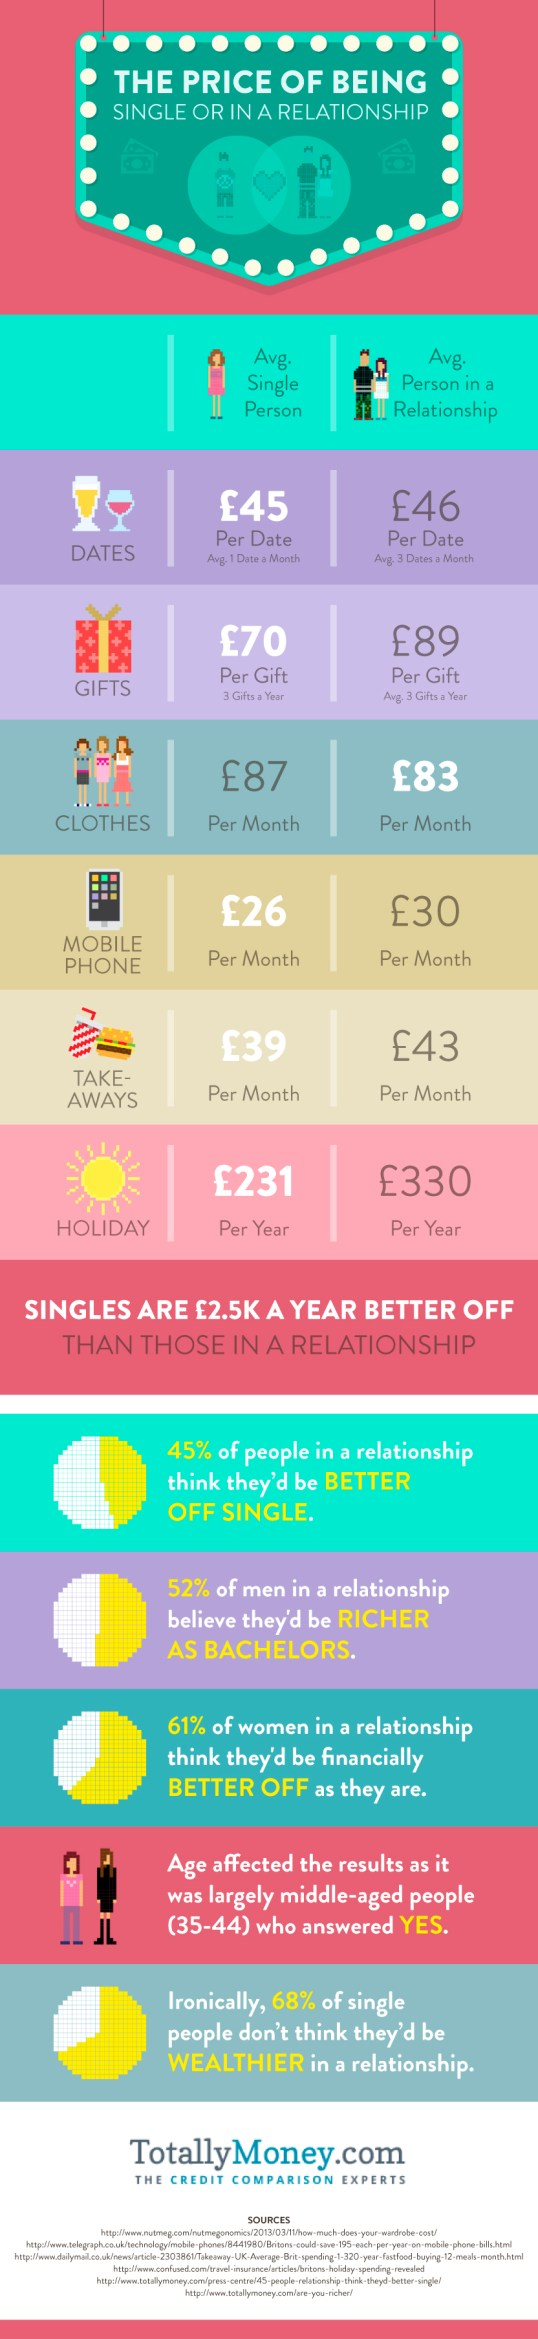 What are the differences in spending habits between single and people in a relationship?